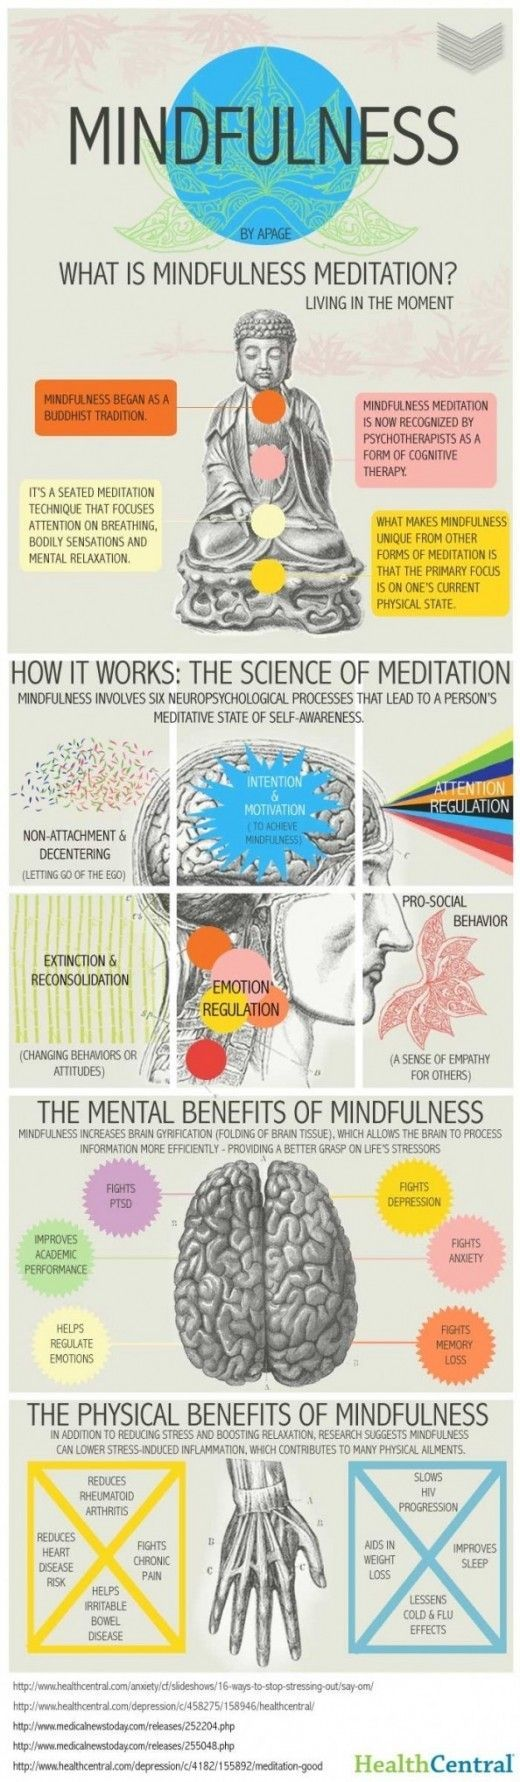 With mindfulness (Mindfulness Therapy), people will be able to deal with stressors and distressing feelings with an accepting mindset instead of avoiding attitude. Mental Therapist.